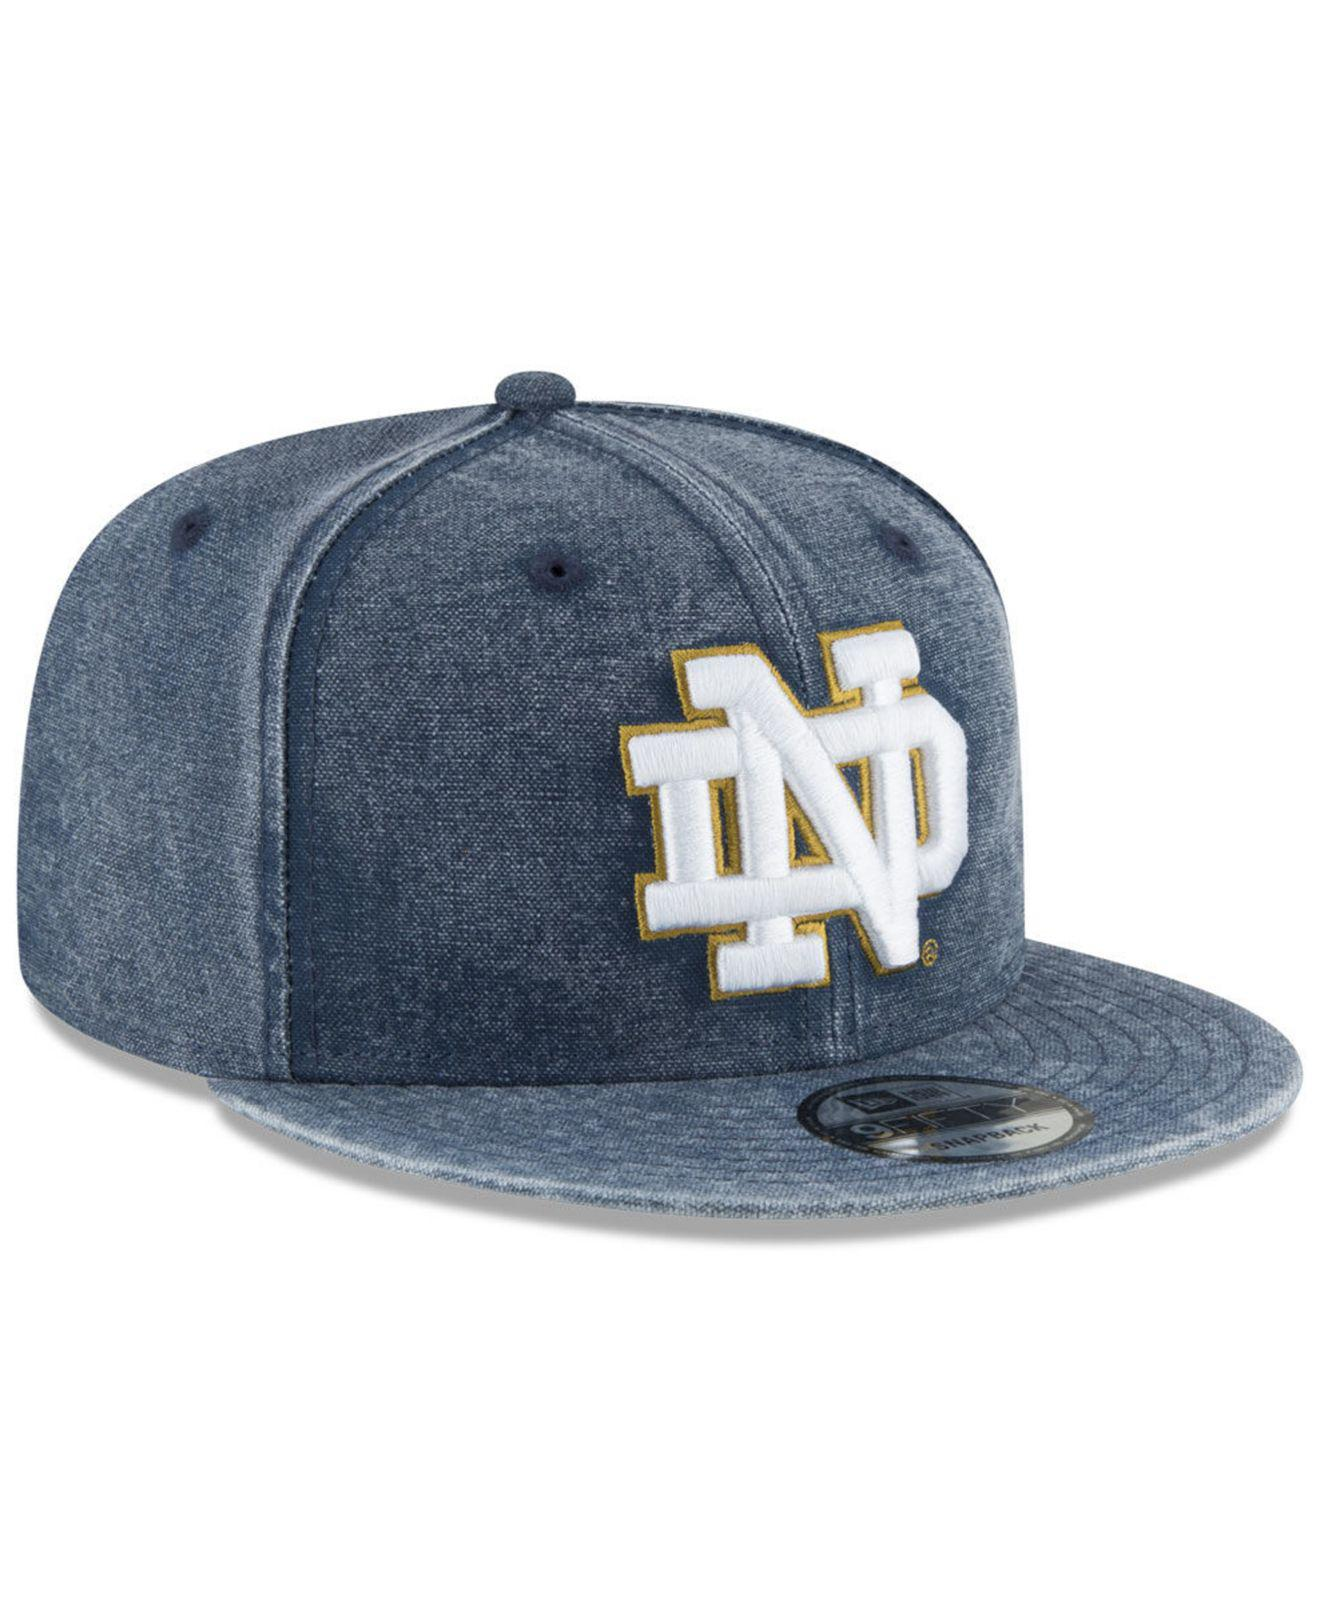 cheaper c140e 73926 KTZ Notre Dame Fighting Irish Rugged Canvas Snapback Cap in Blue for ...